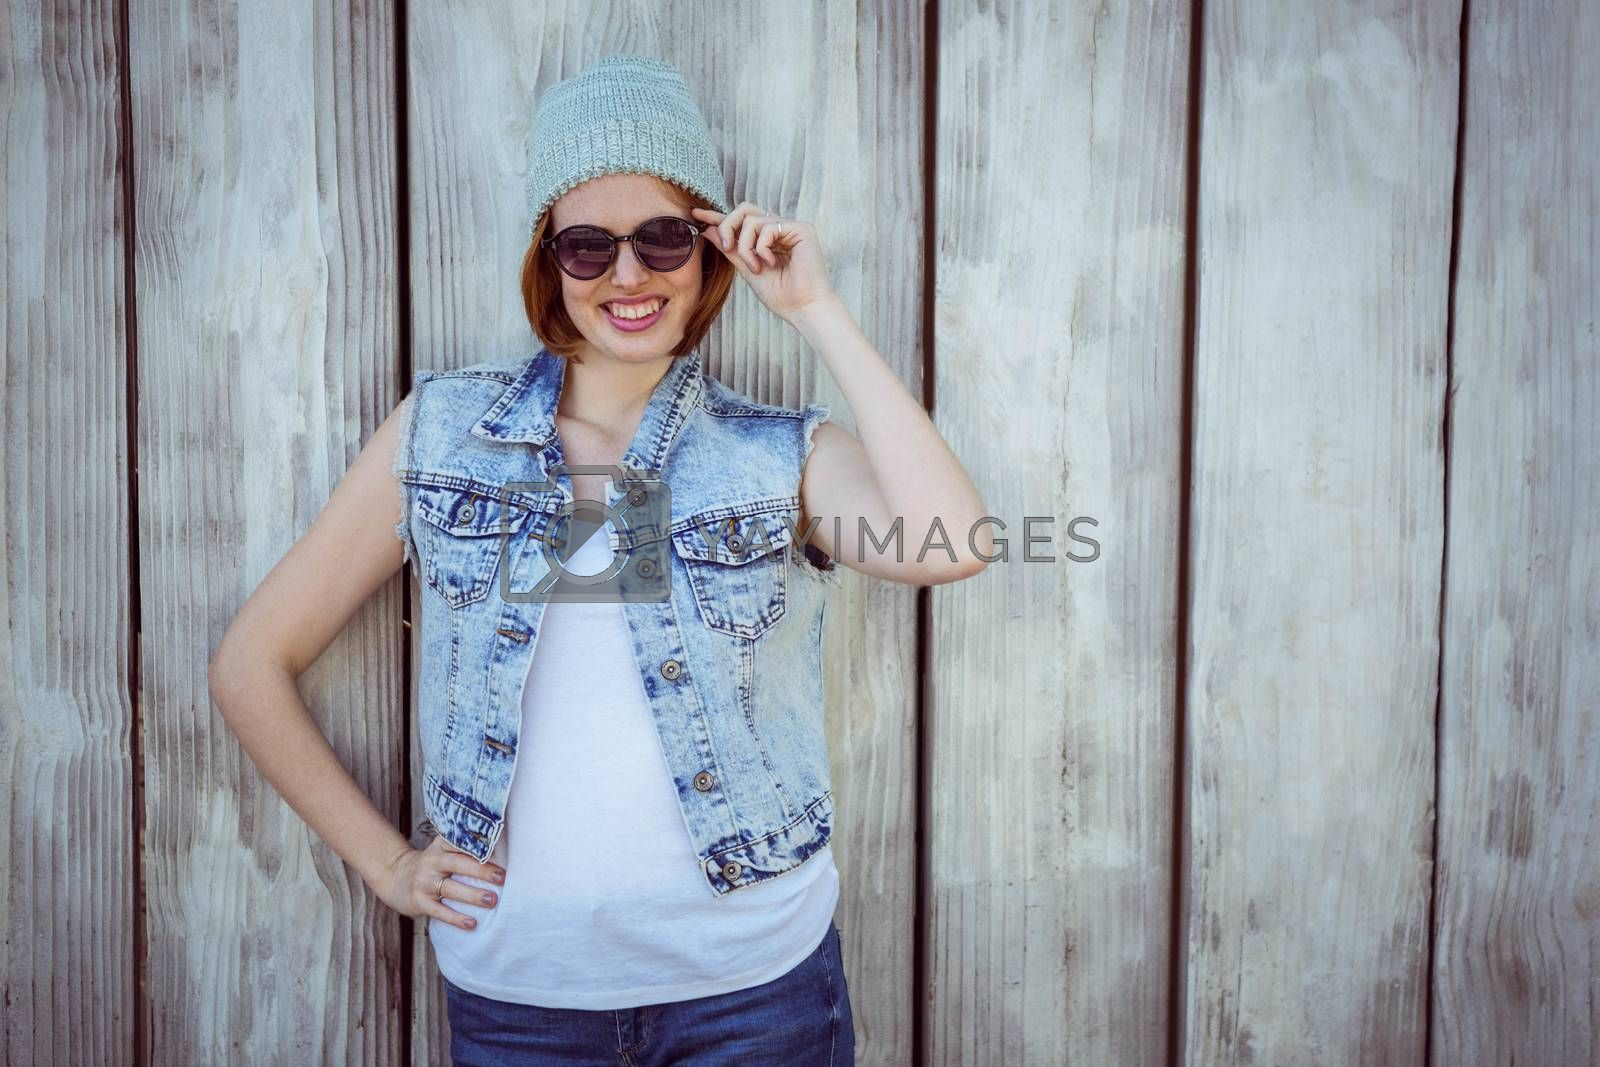 smiling hipster woman in sunglasses and a beanie hat against a wooden background